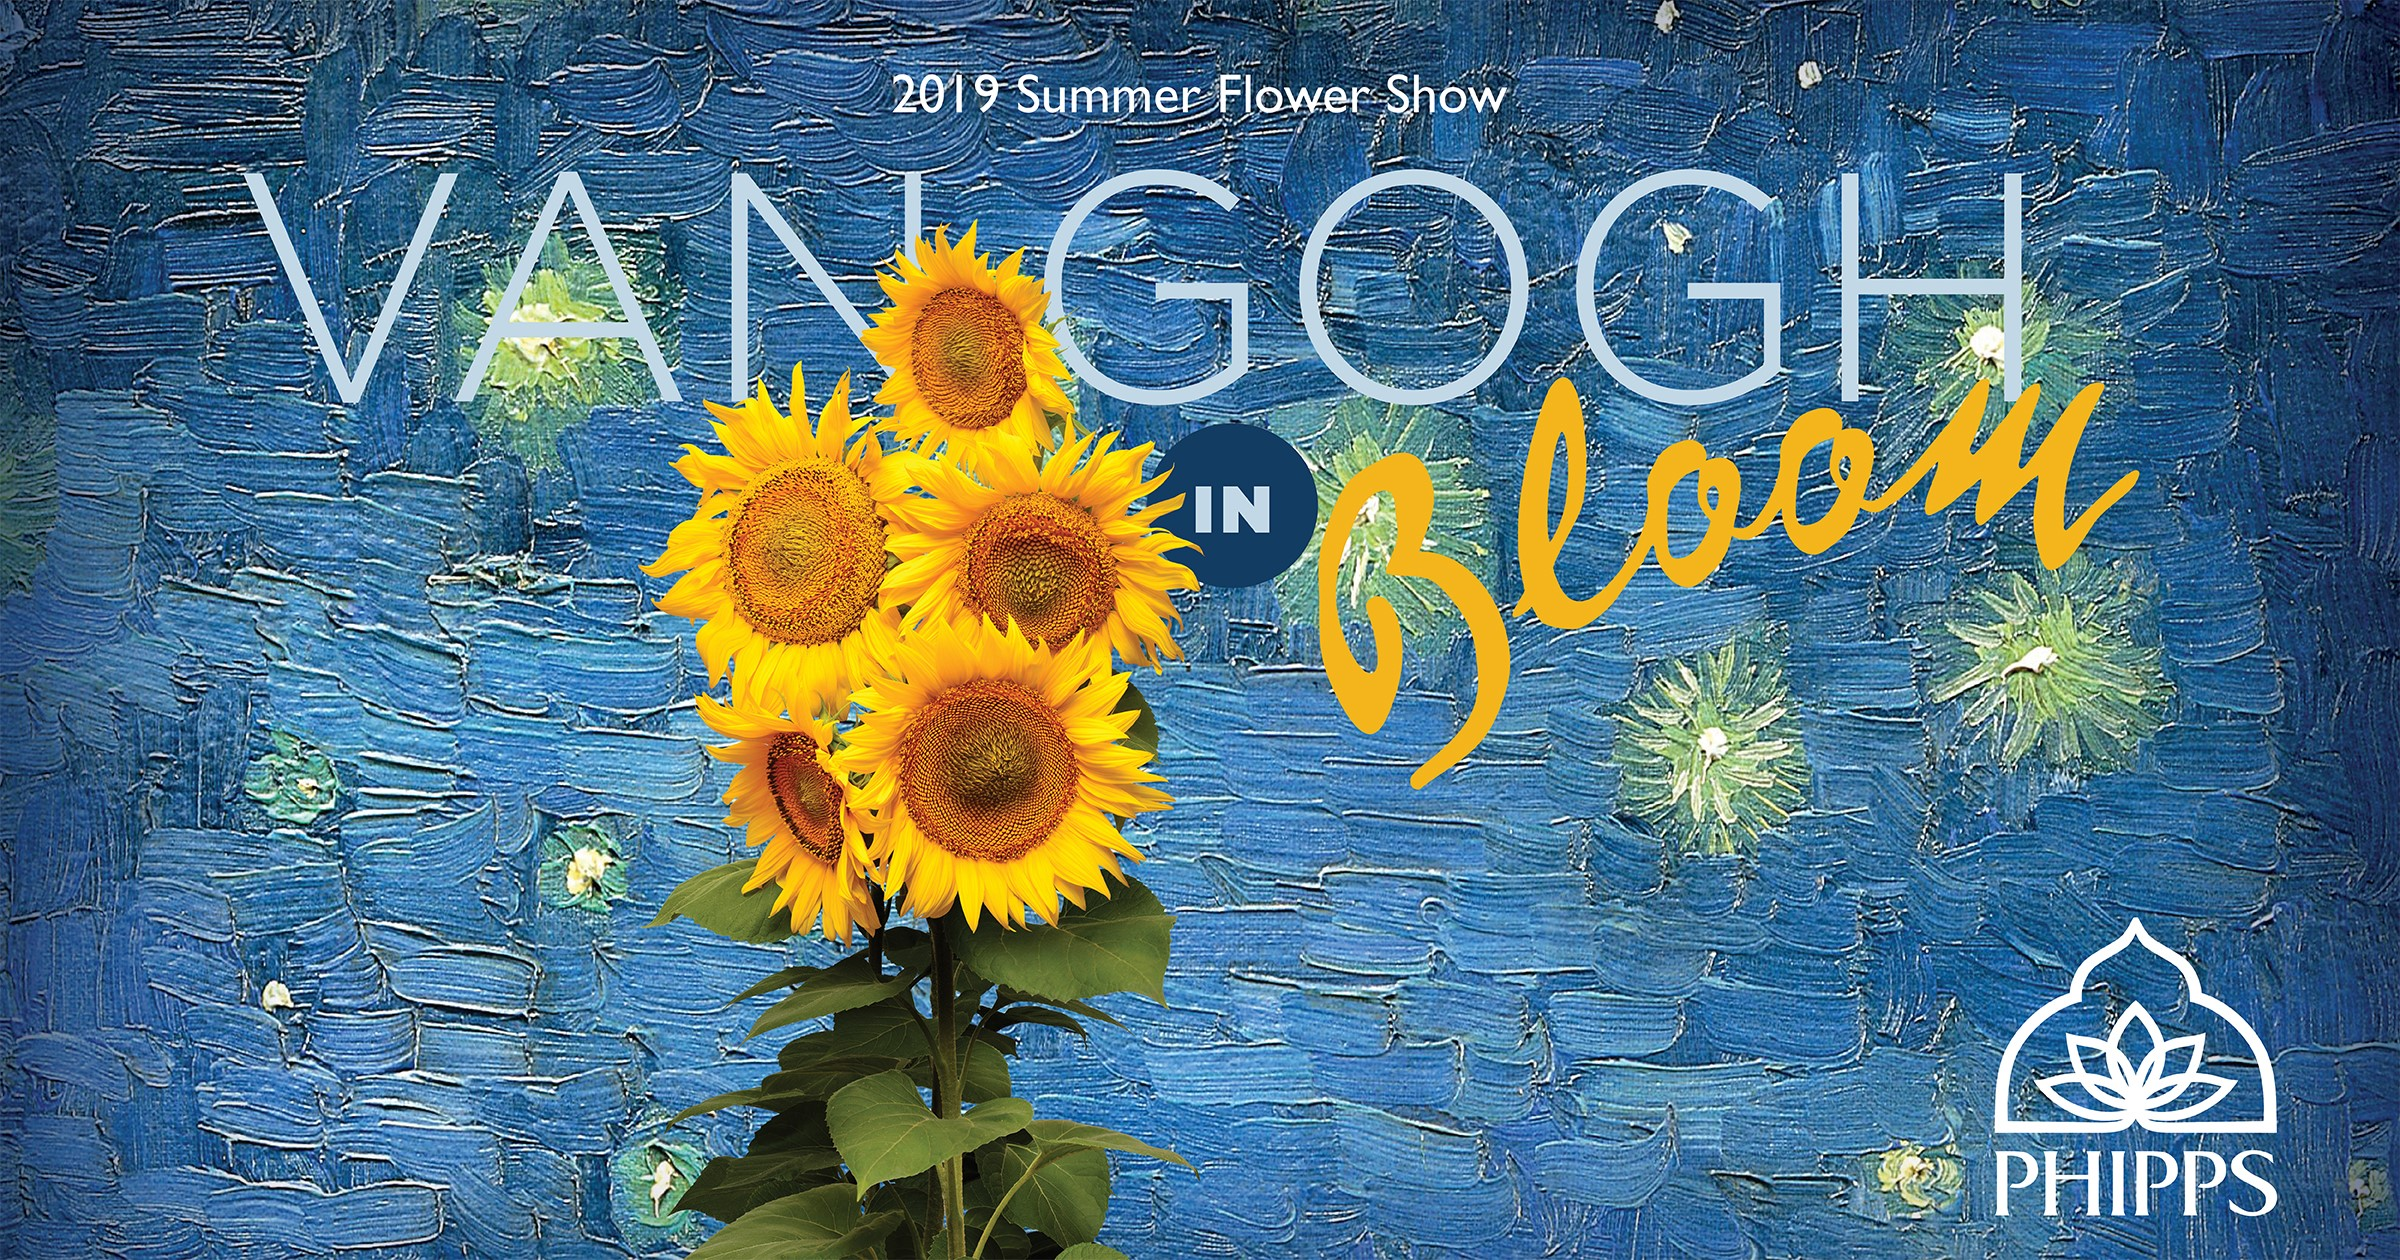 The Artistry Of Vincent Van Gogh Comes To Life In Phipps